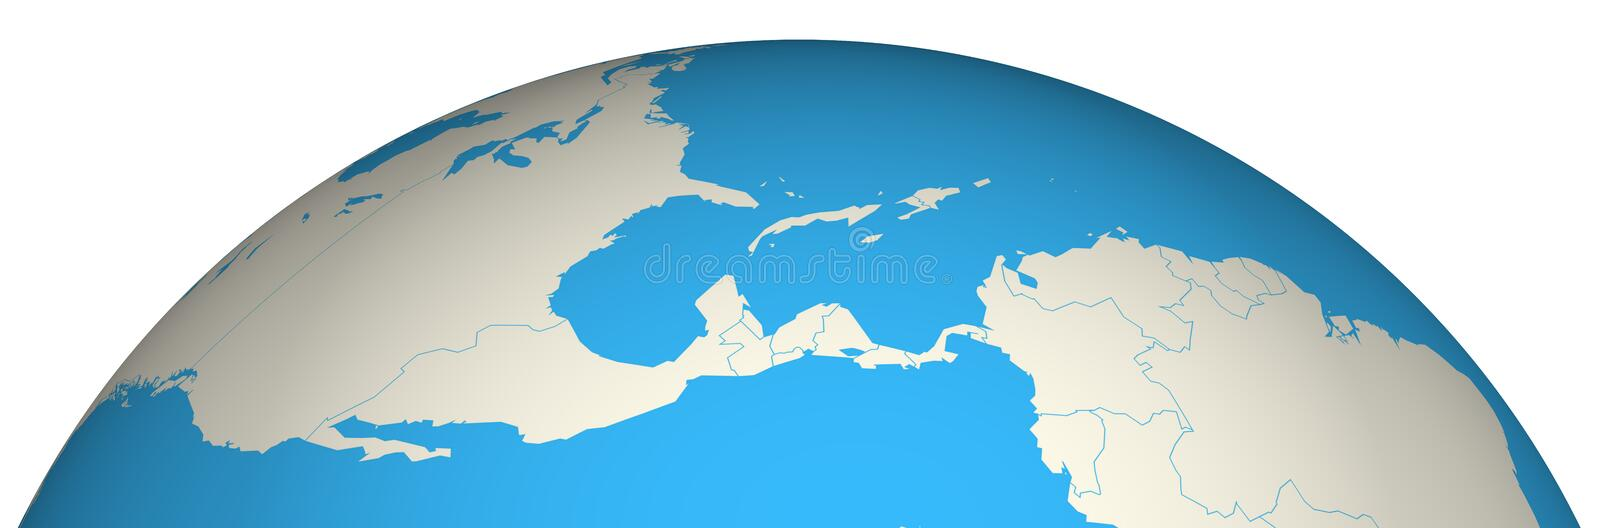 Globe 3D stock illustration